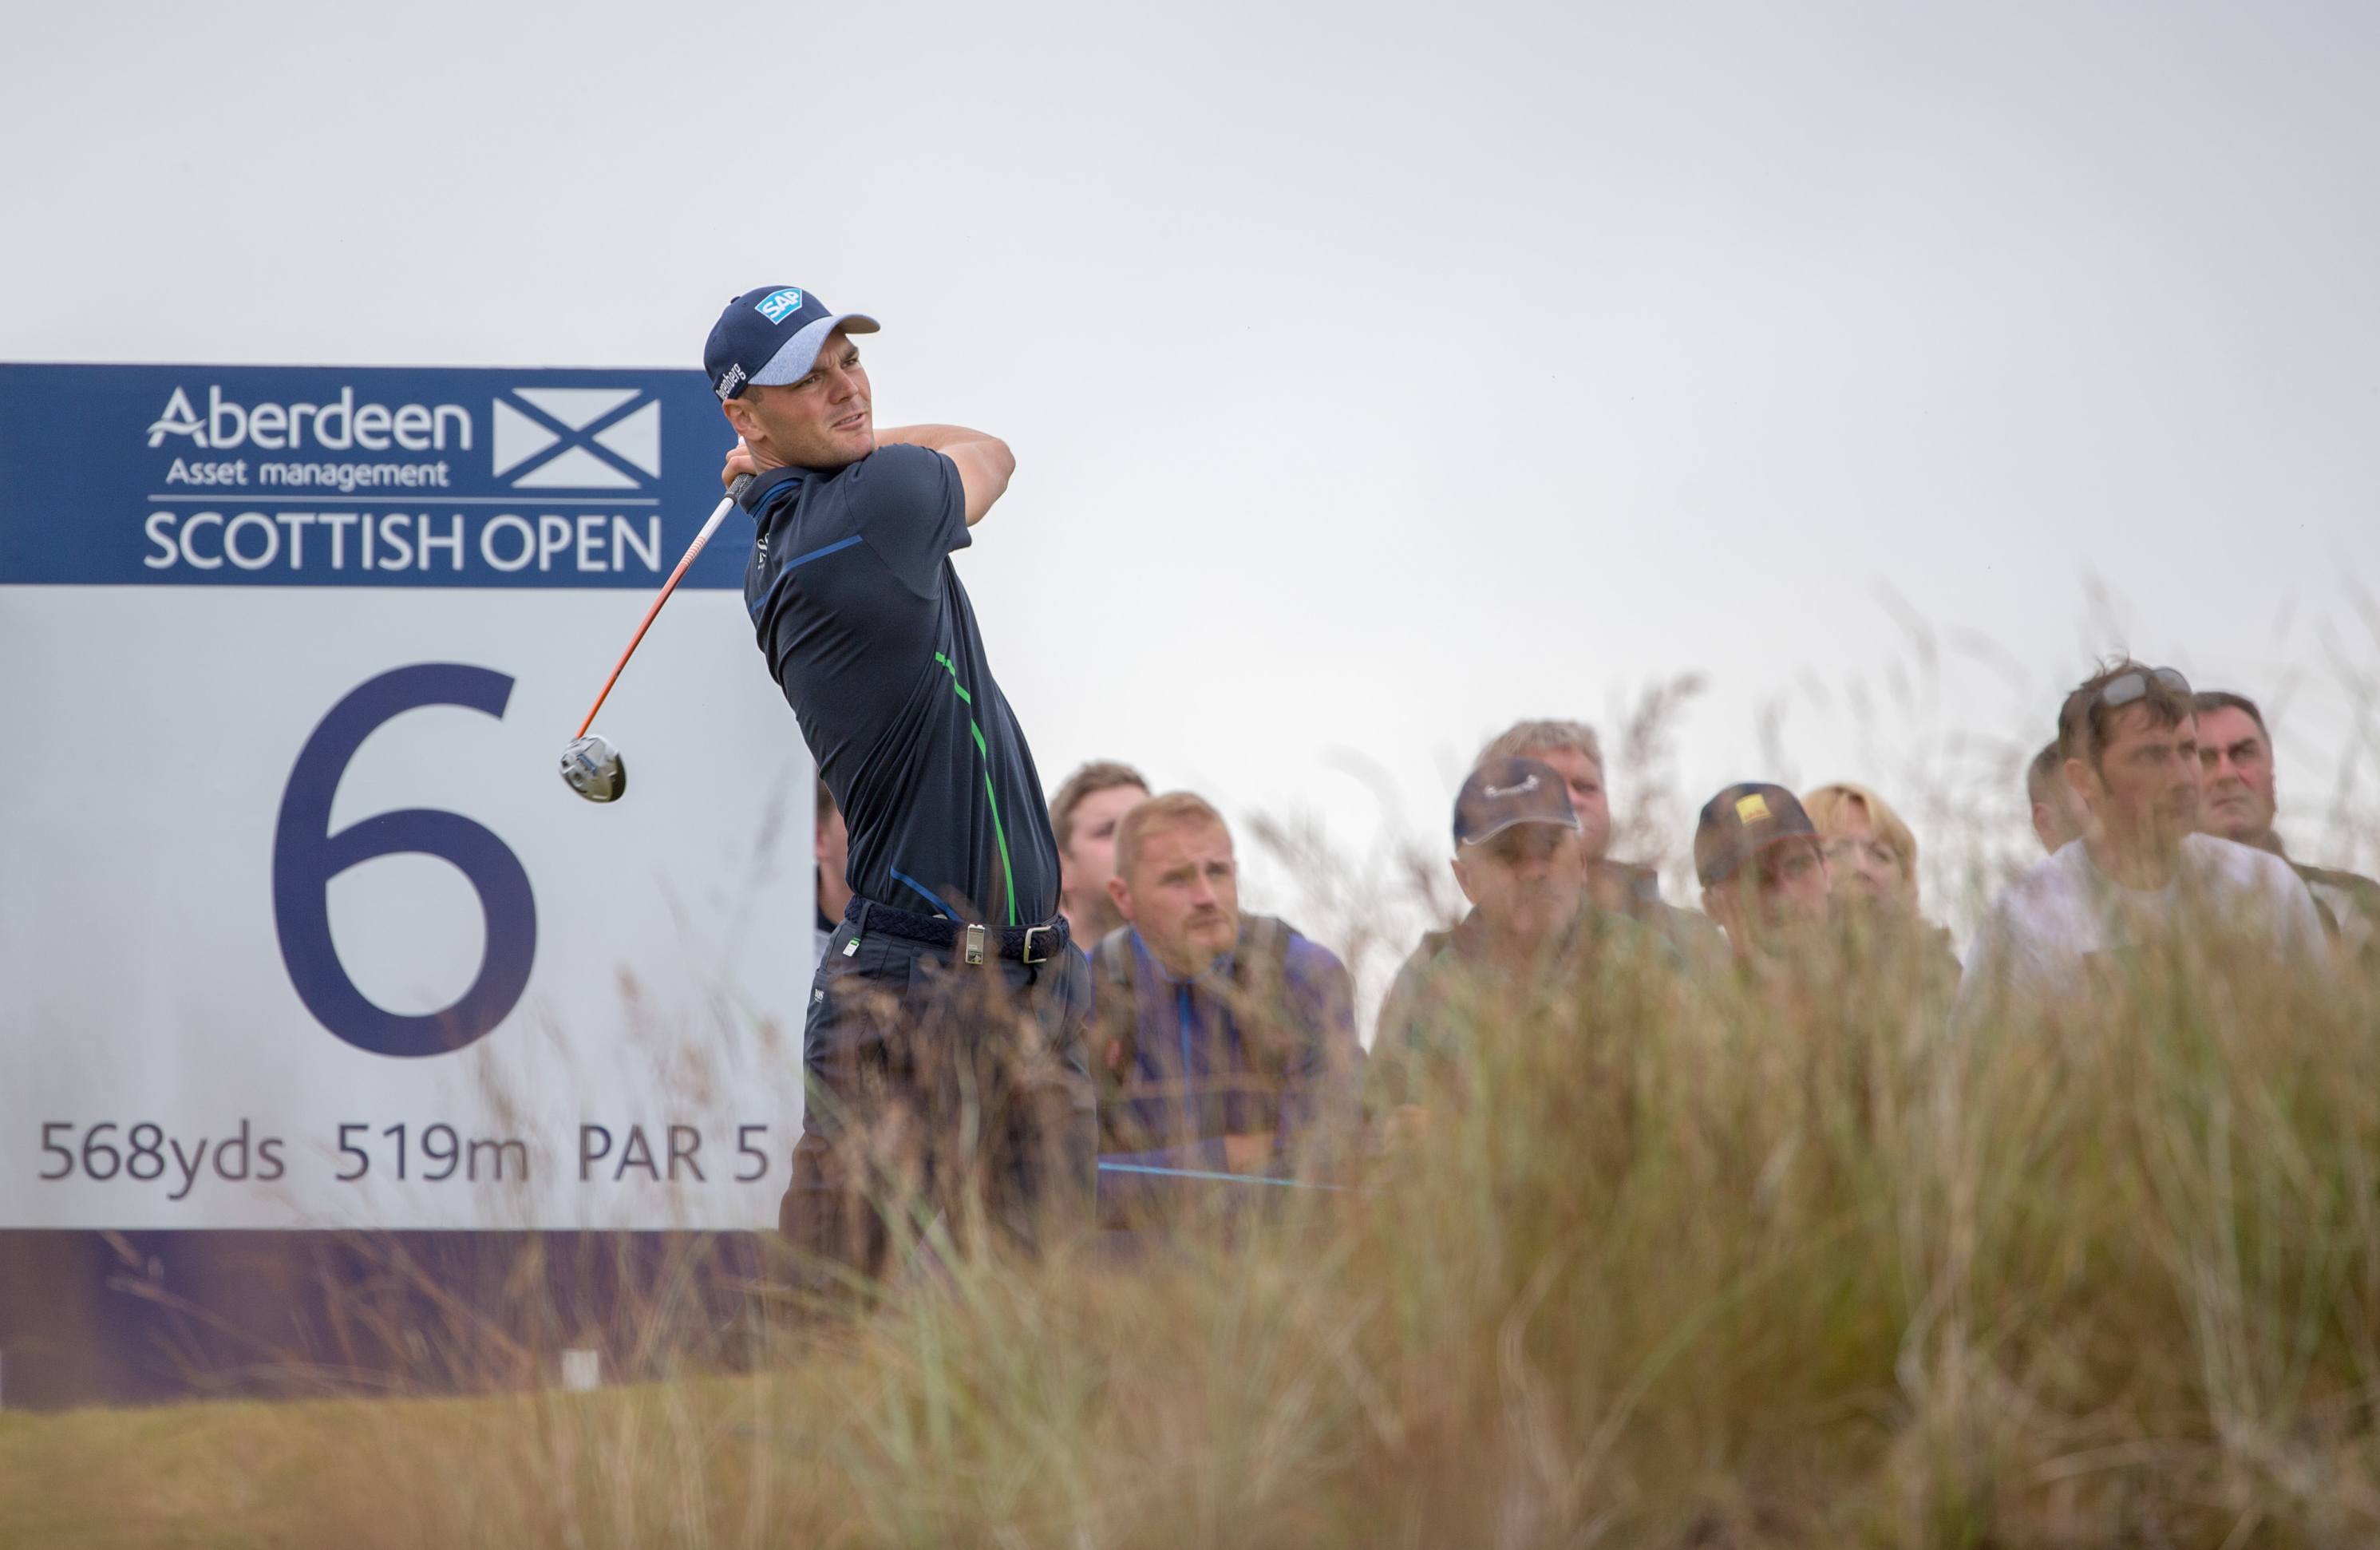 Germany's Martin Kaymer tees off on the 6th, during day three of the 2016 AAM Scottish Open golf tournament at Castle Stuart Golf Links in Inverness, Scotland, Saturday July 9, 2016. (Kenny Smith / PA via AP)